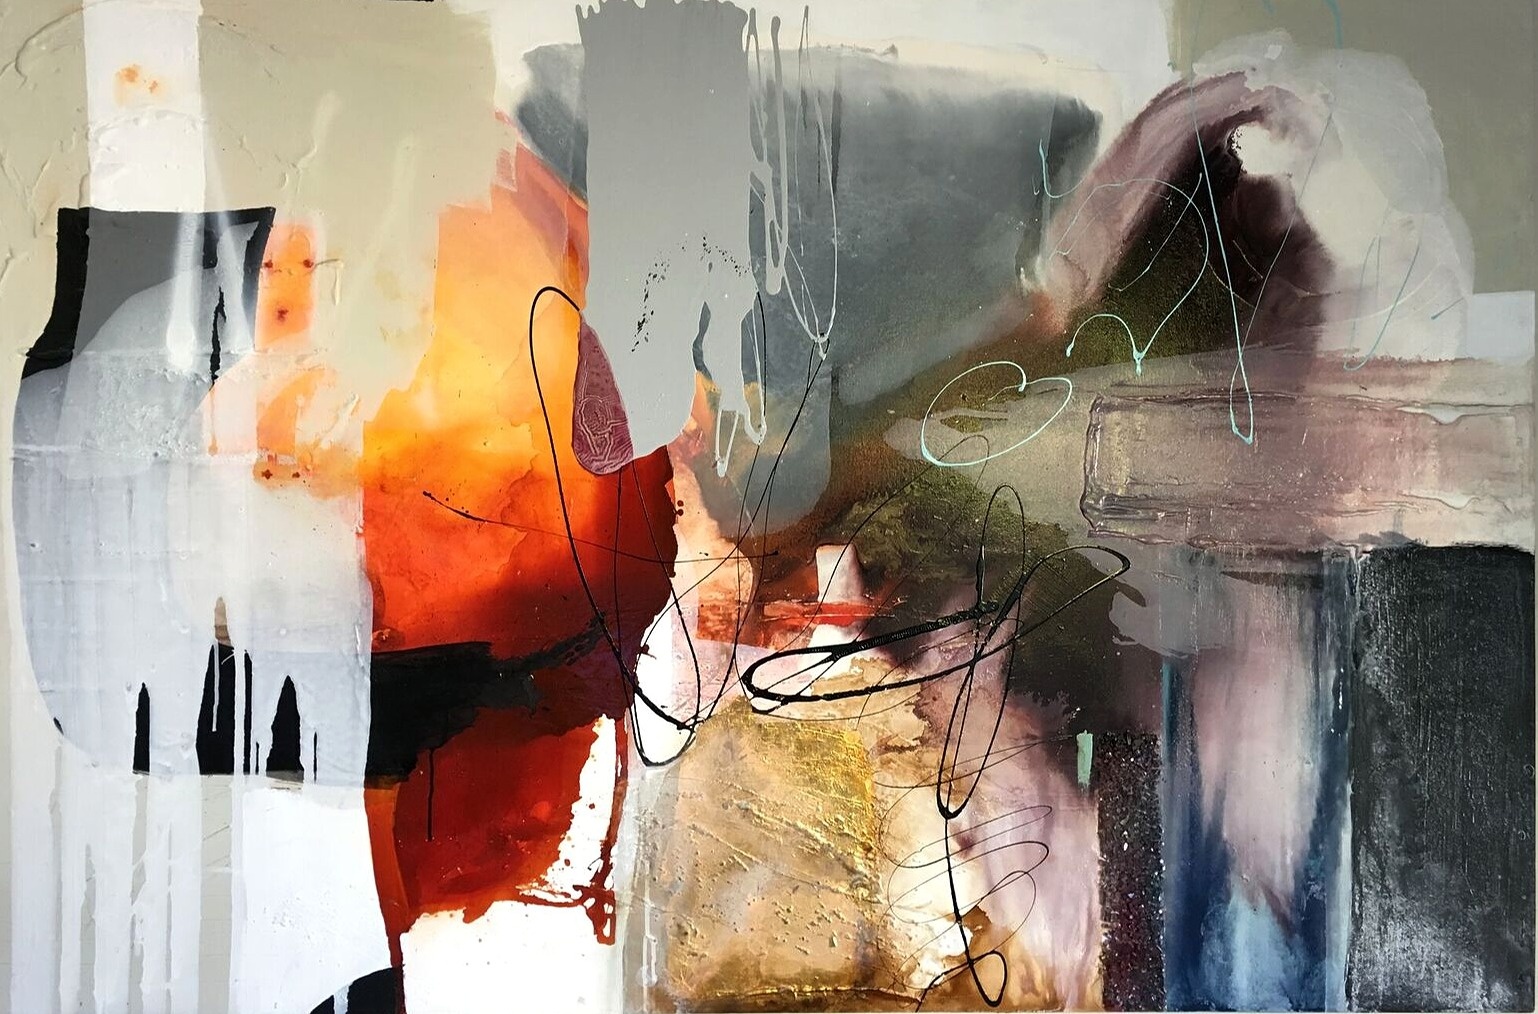 Vicky Sanders Abstract - The Kingdom Within